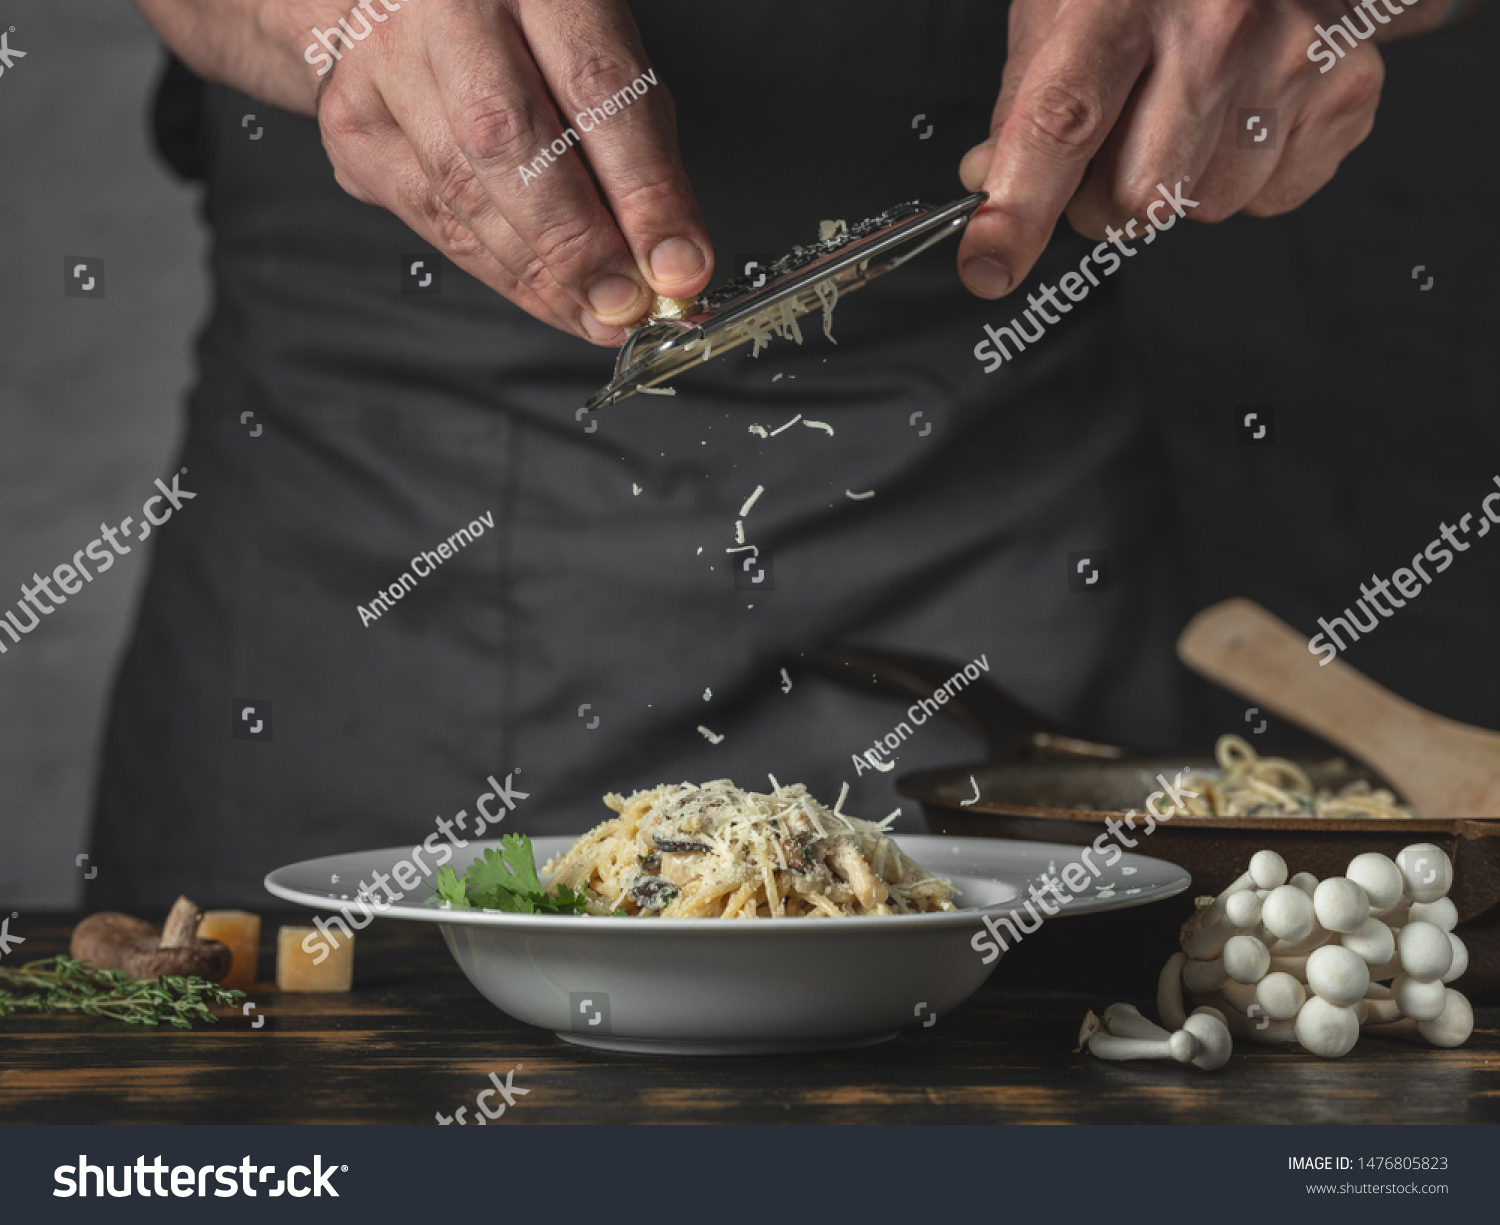 Chef hands cooking Italian pasta and adding cheese parmesan in dish on wooden table background. #1476805823